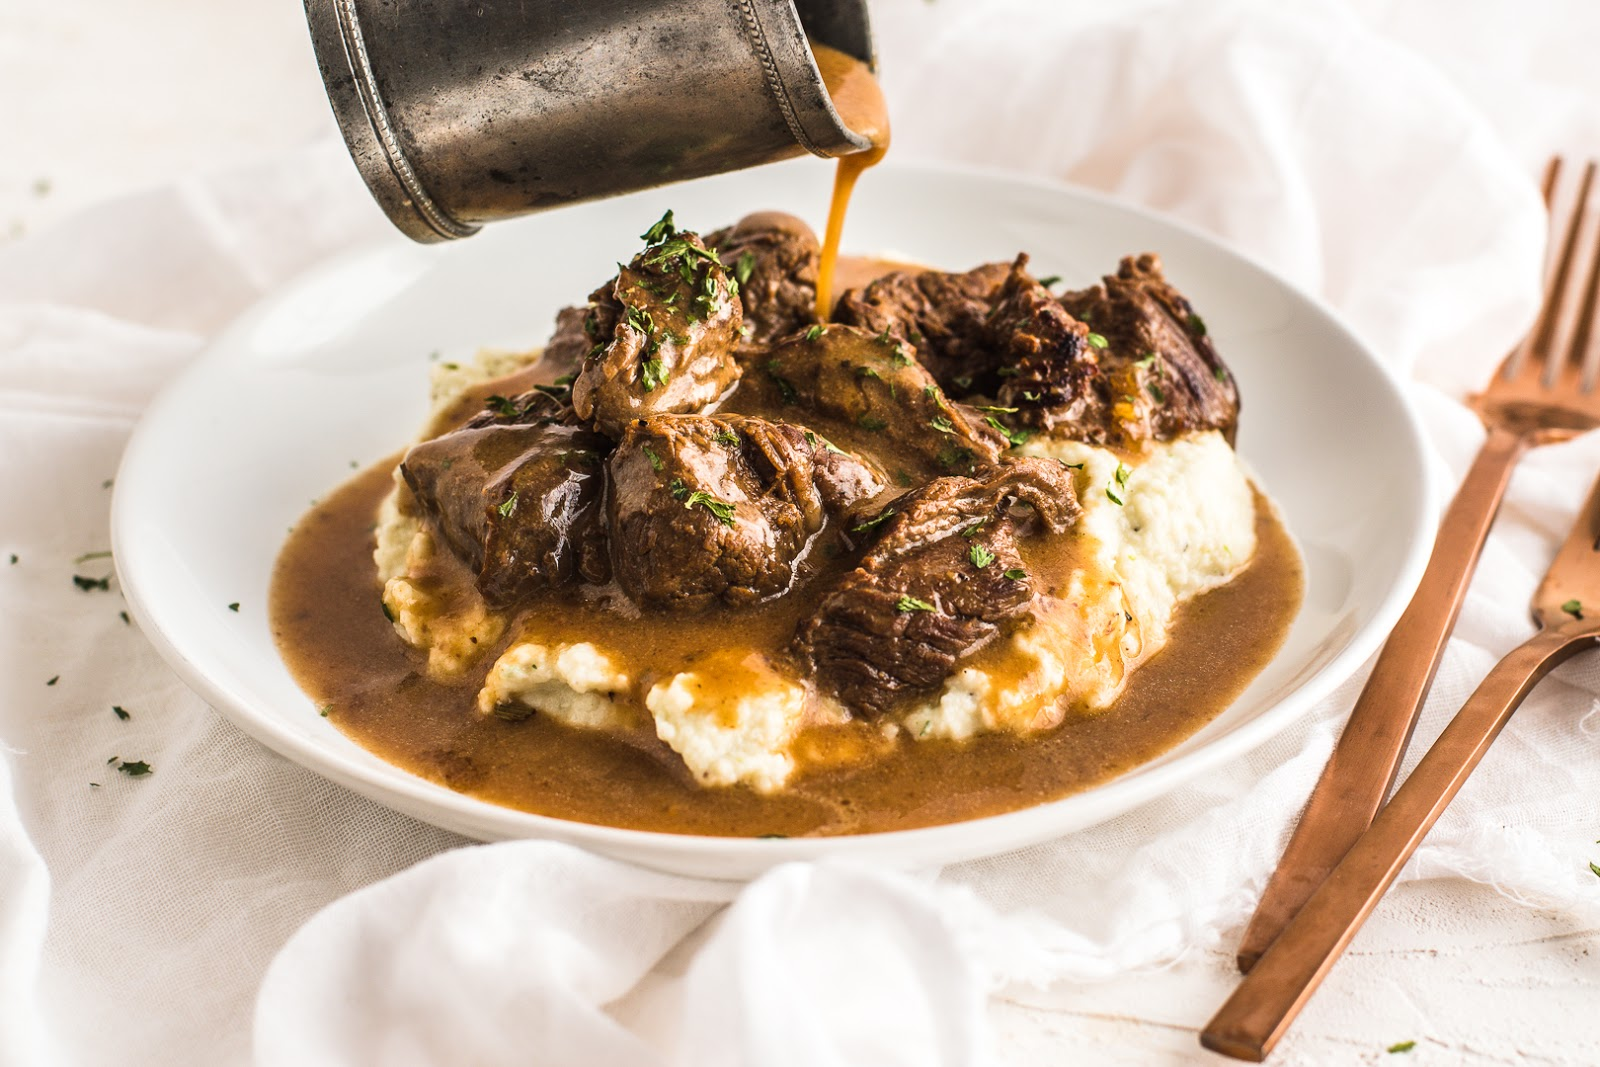 BEEF TIPS & GRAVY OVER CAULIFLOWER MASH #cauliflower #healthyrecipe #whole30 #paleo #beef